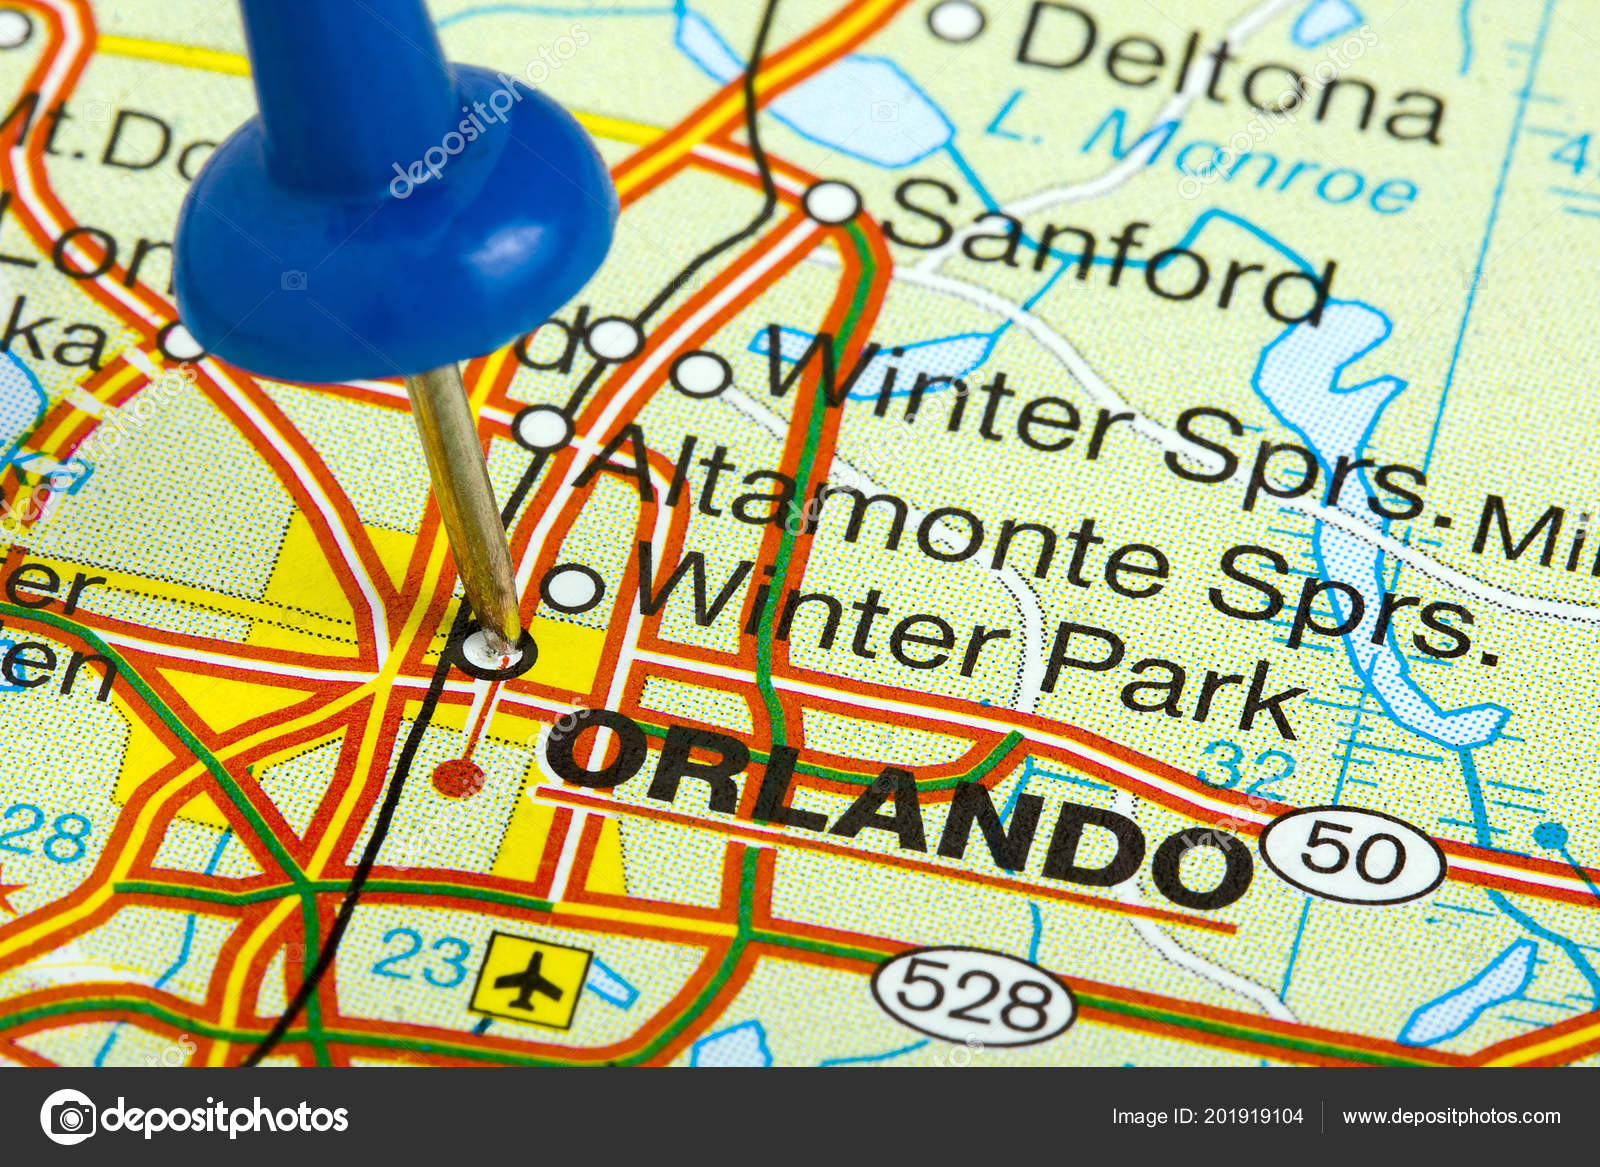 Orlando Florida On Map.Pushpin Orlando Florida Map Stock Photo C Canbedone 201919104